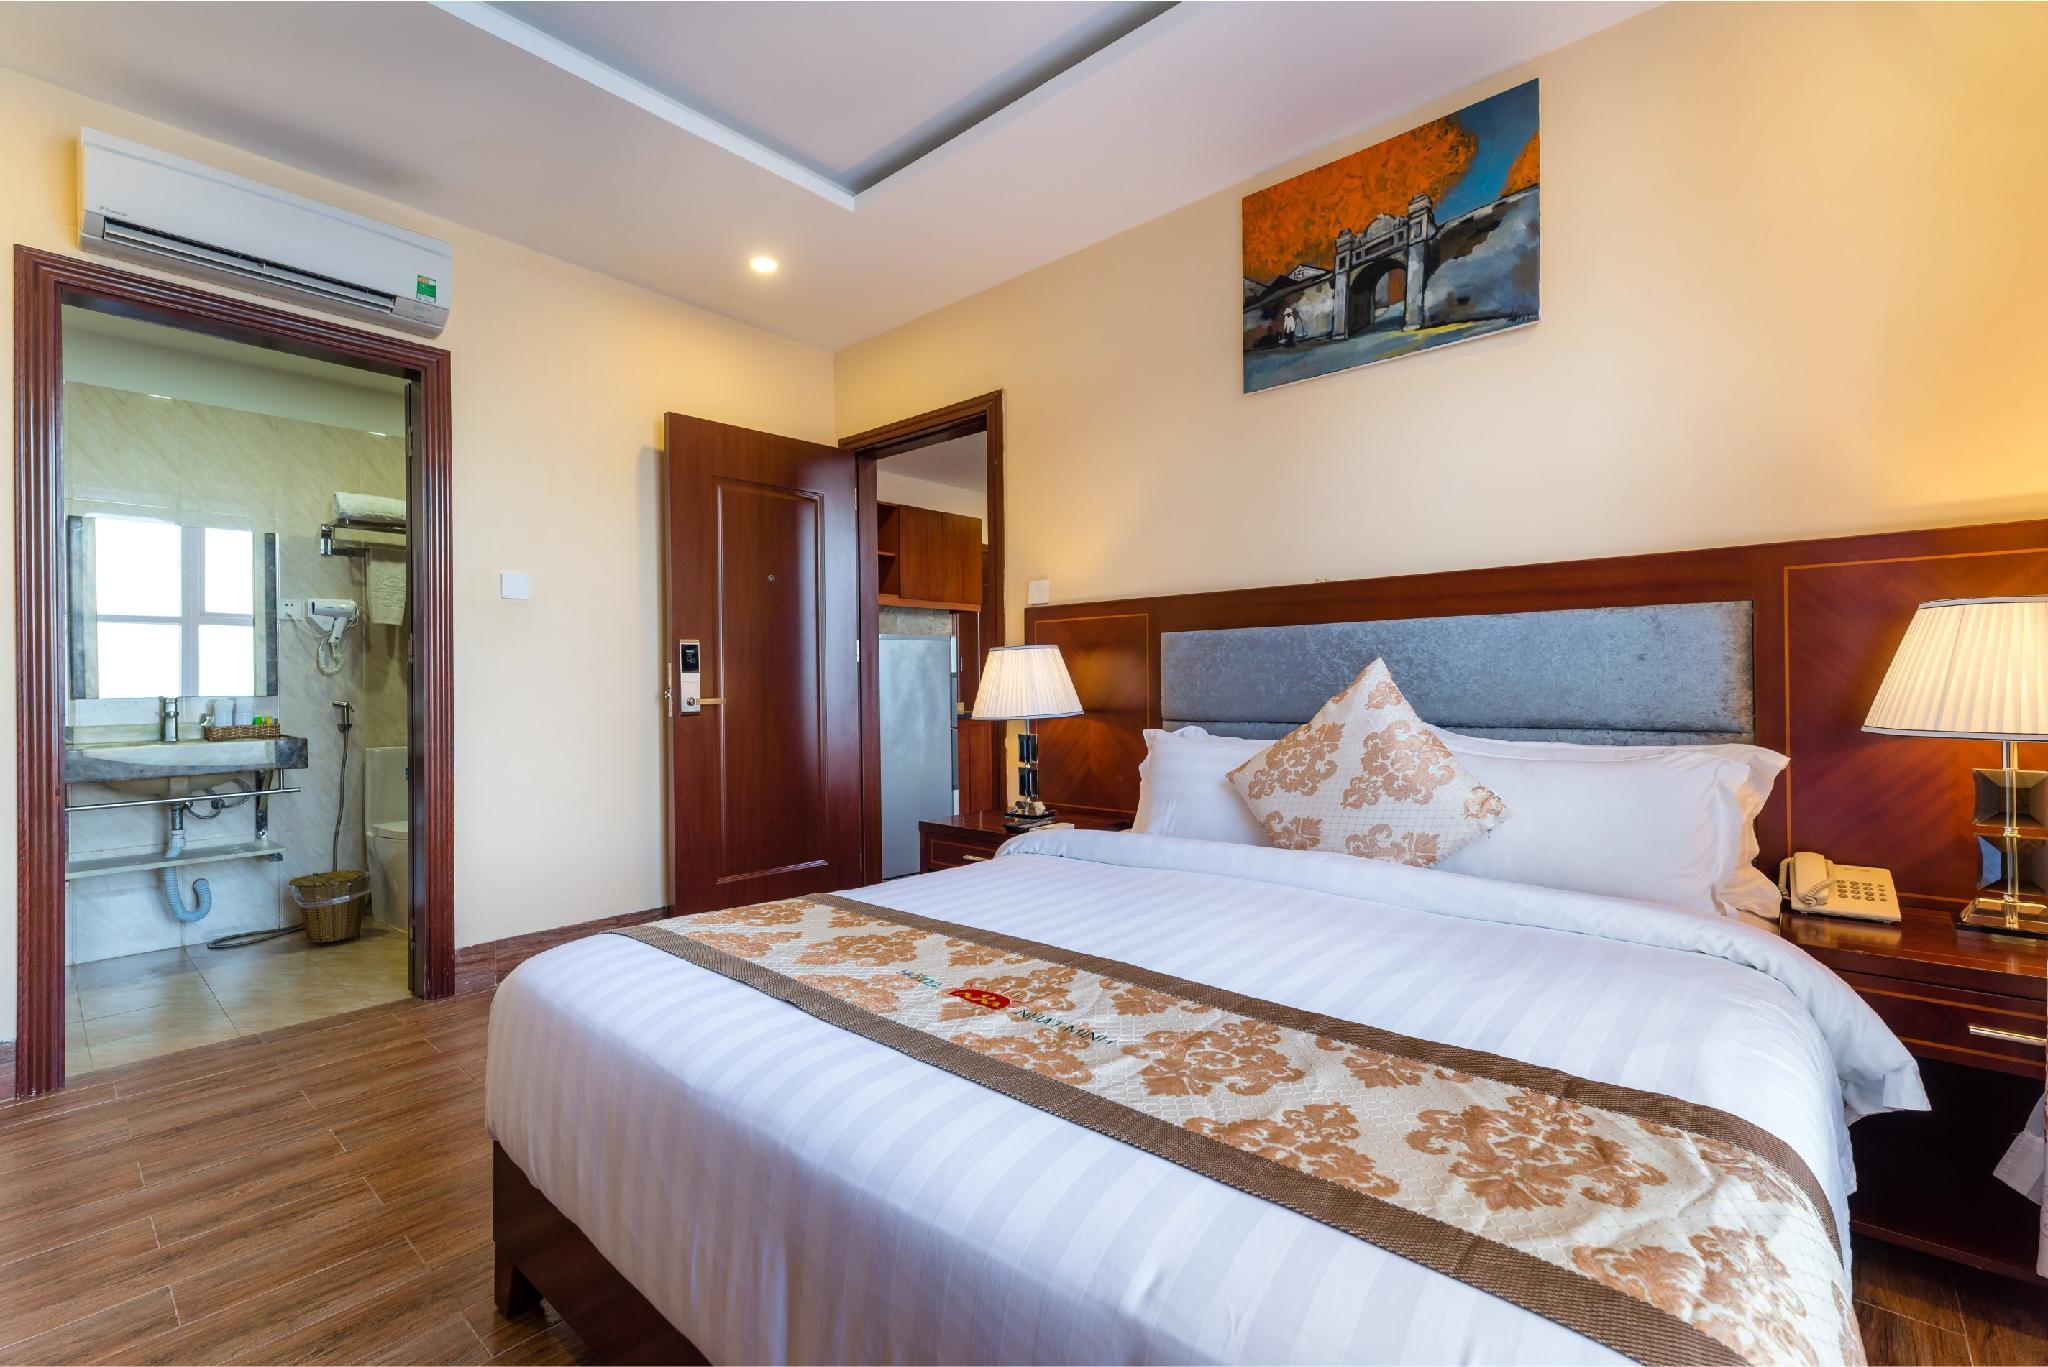 Nhat Minh Hotel And Apartment In Vietnam